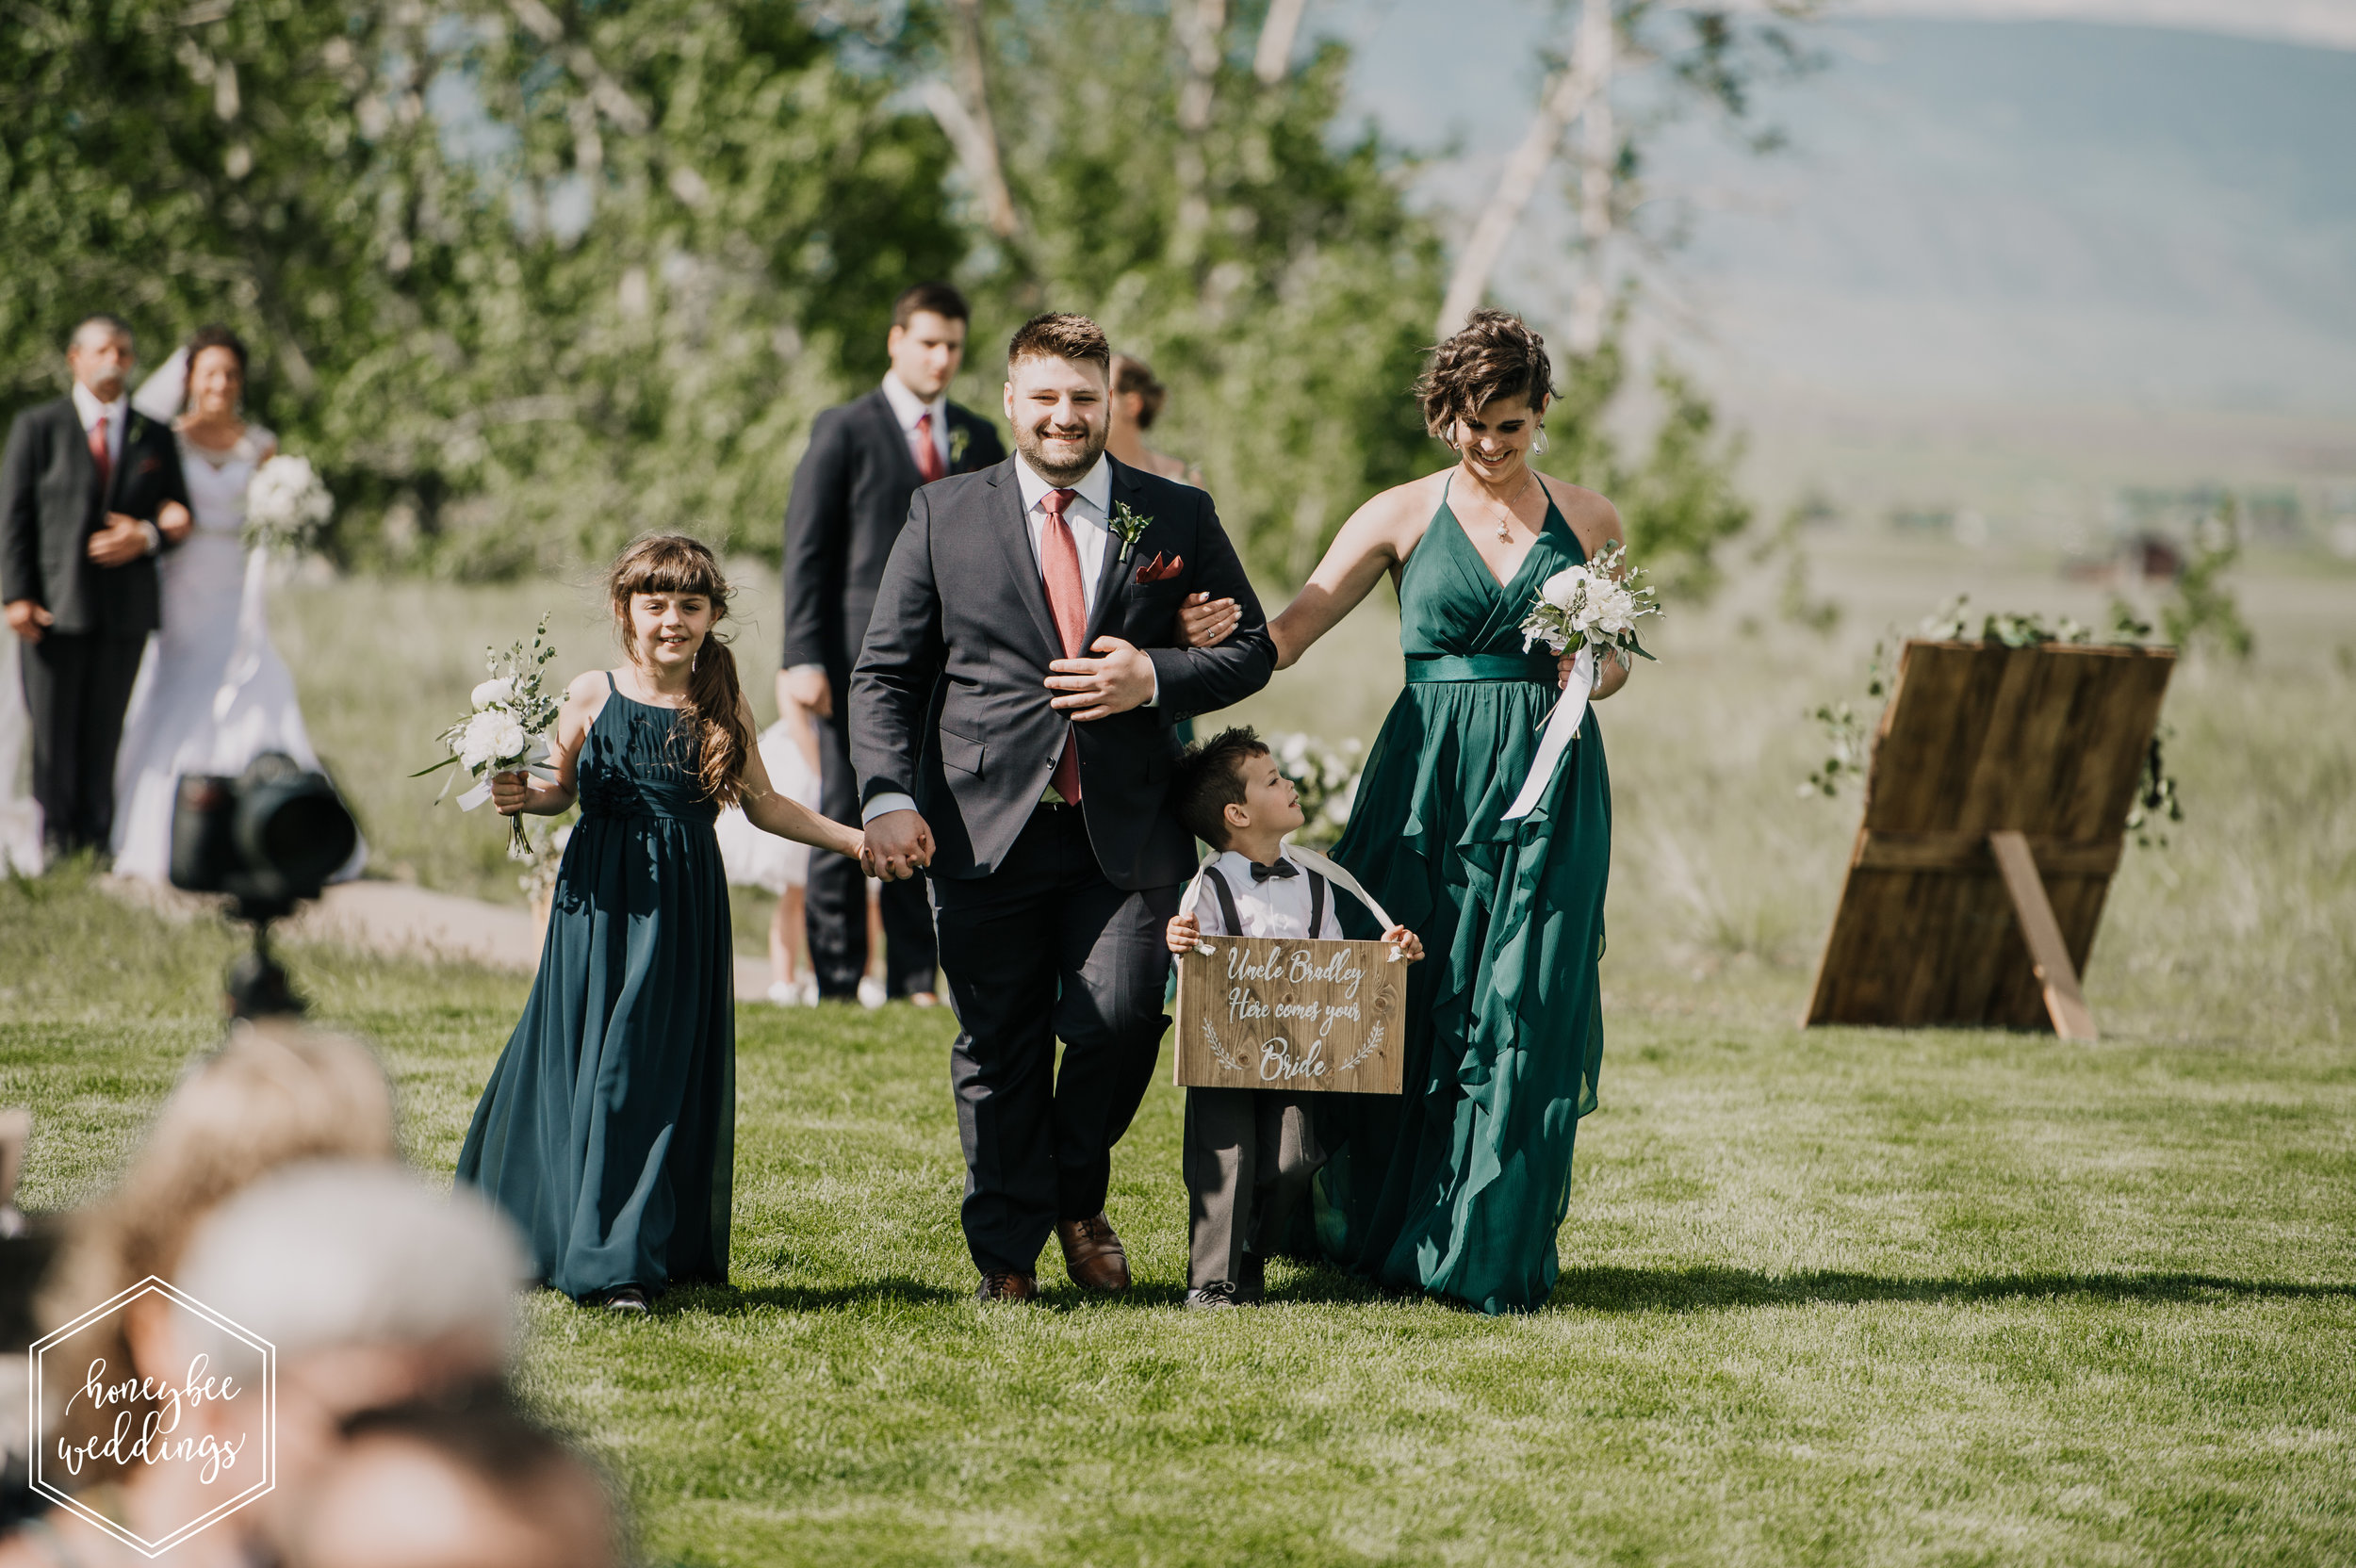 140 Chico Hotsprings Wedding_Bowdino 2018-3364-2.jpg